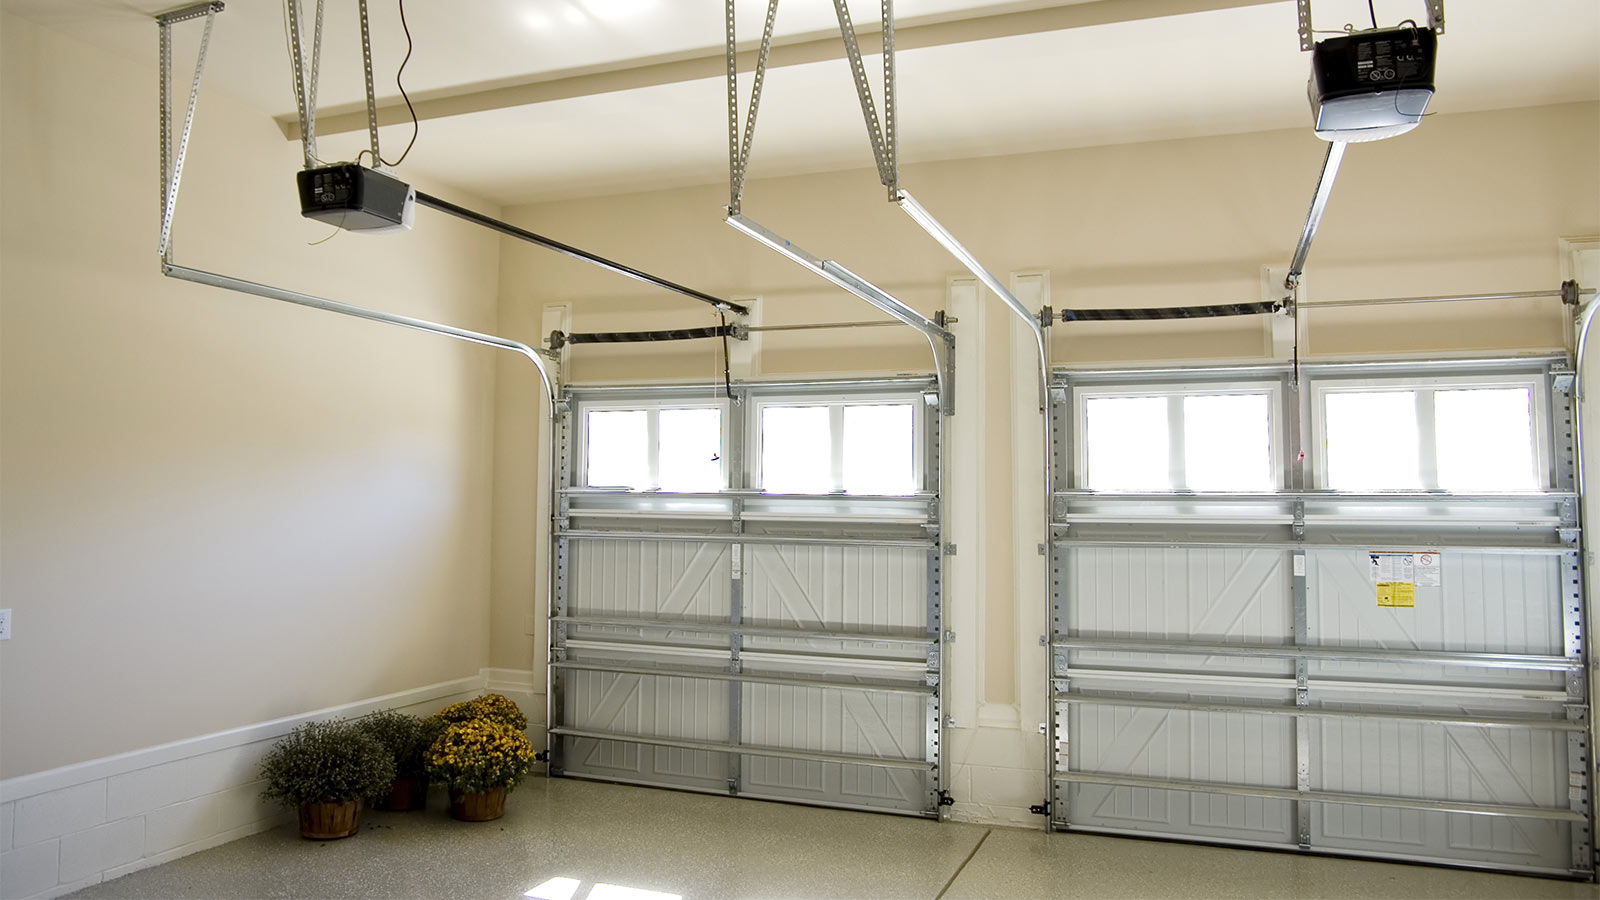 Sectional Garage Doors from Steel Security Doors Grays suppliers.